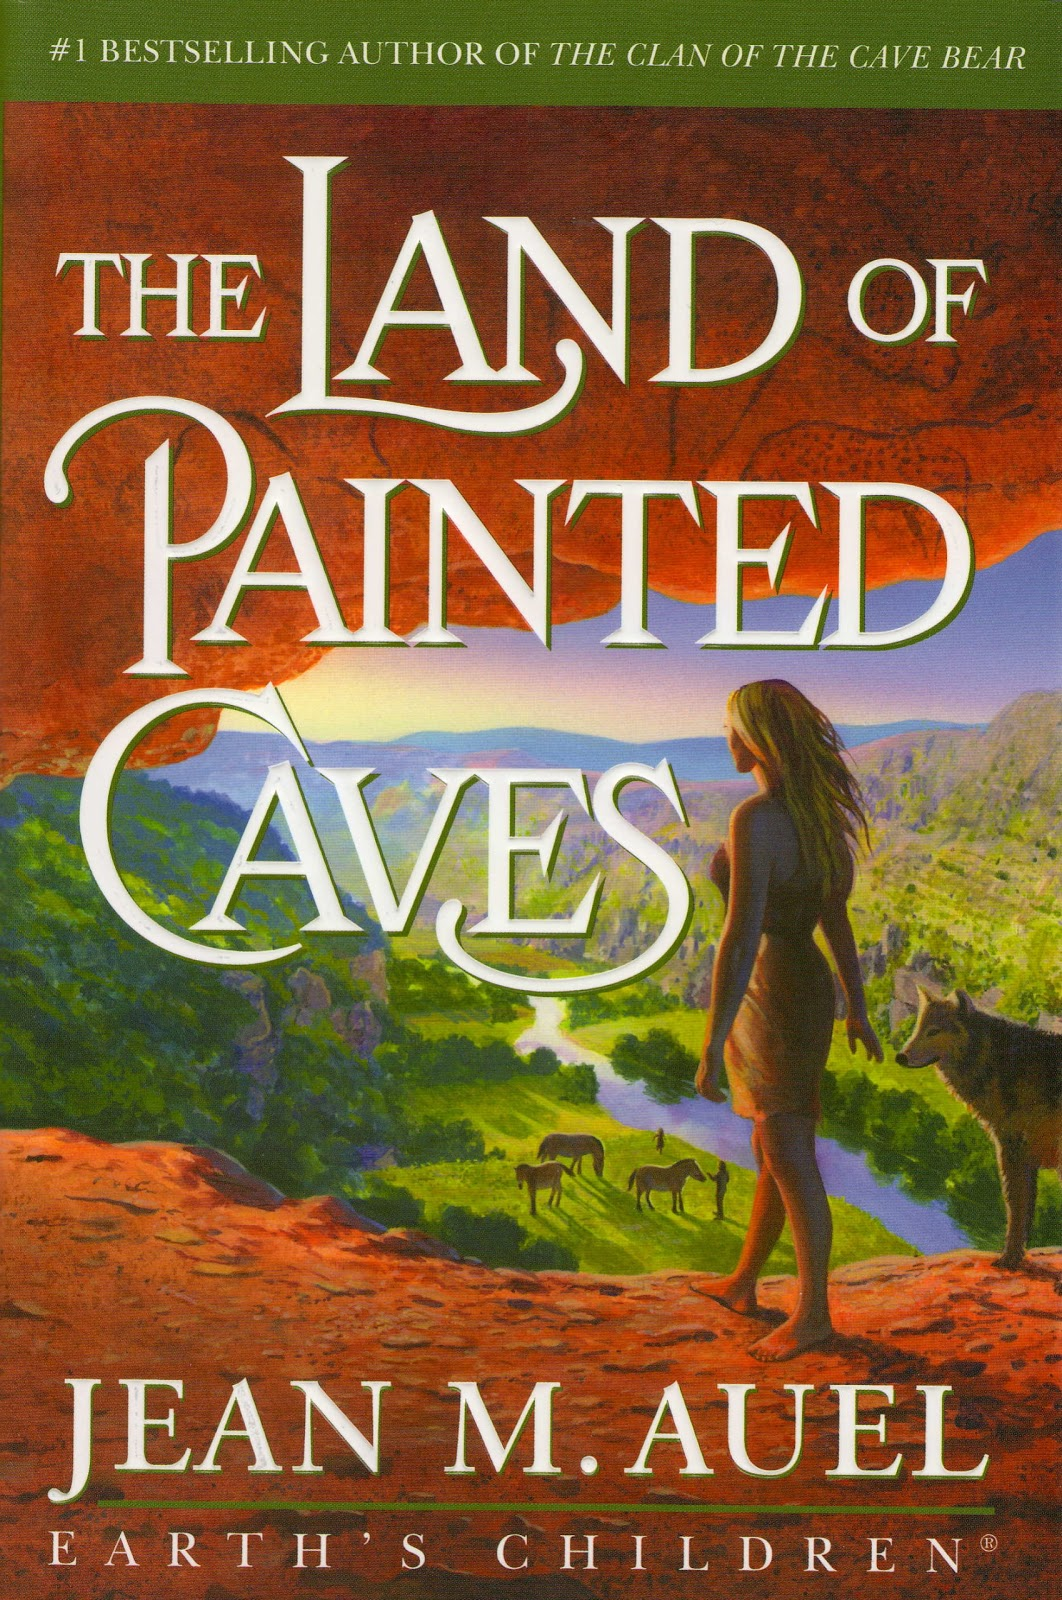 SUMMIT BOOK REVIEWS: THE LAND OF PAINTED CAVES by Jean M. Auel